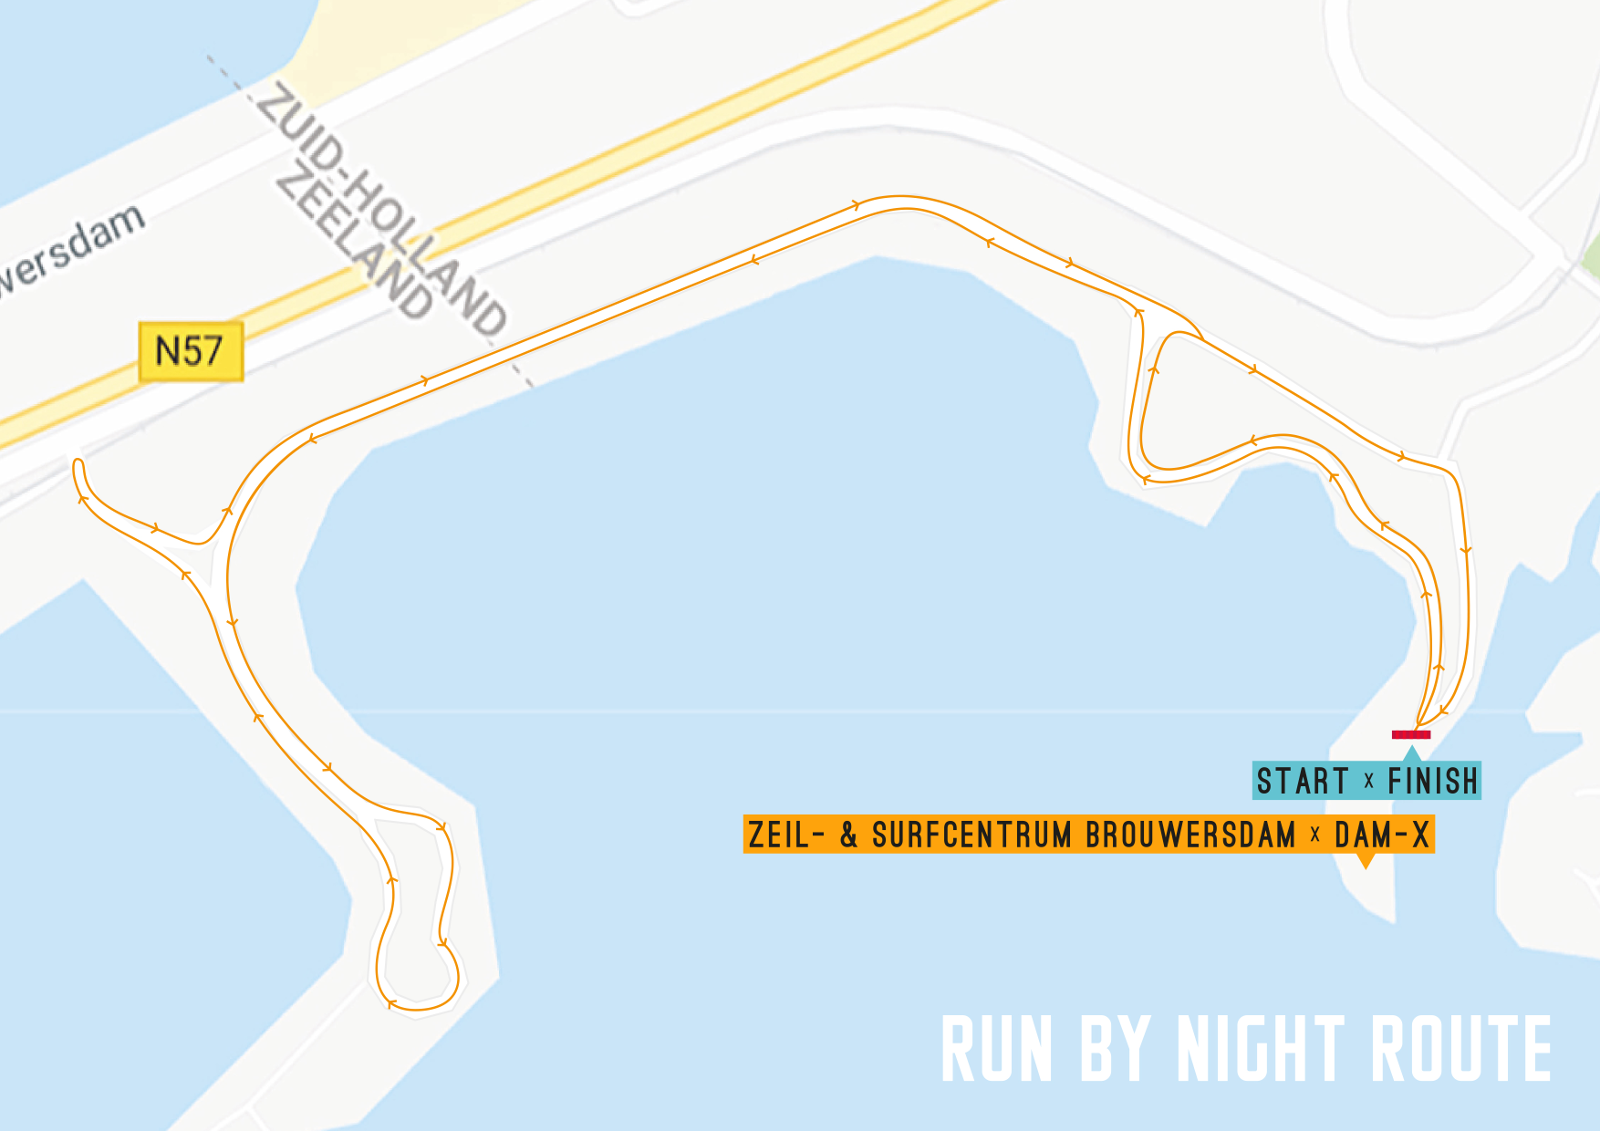 Run by Night Route